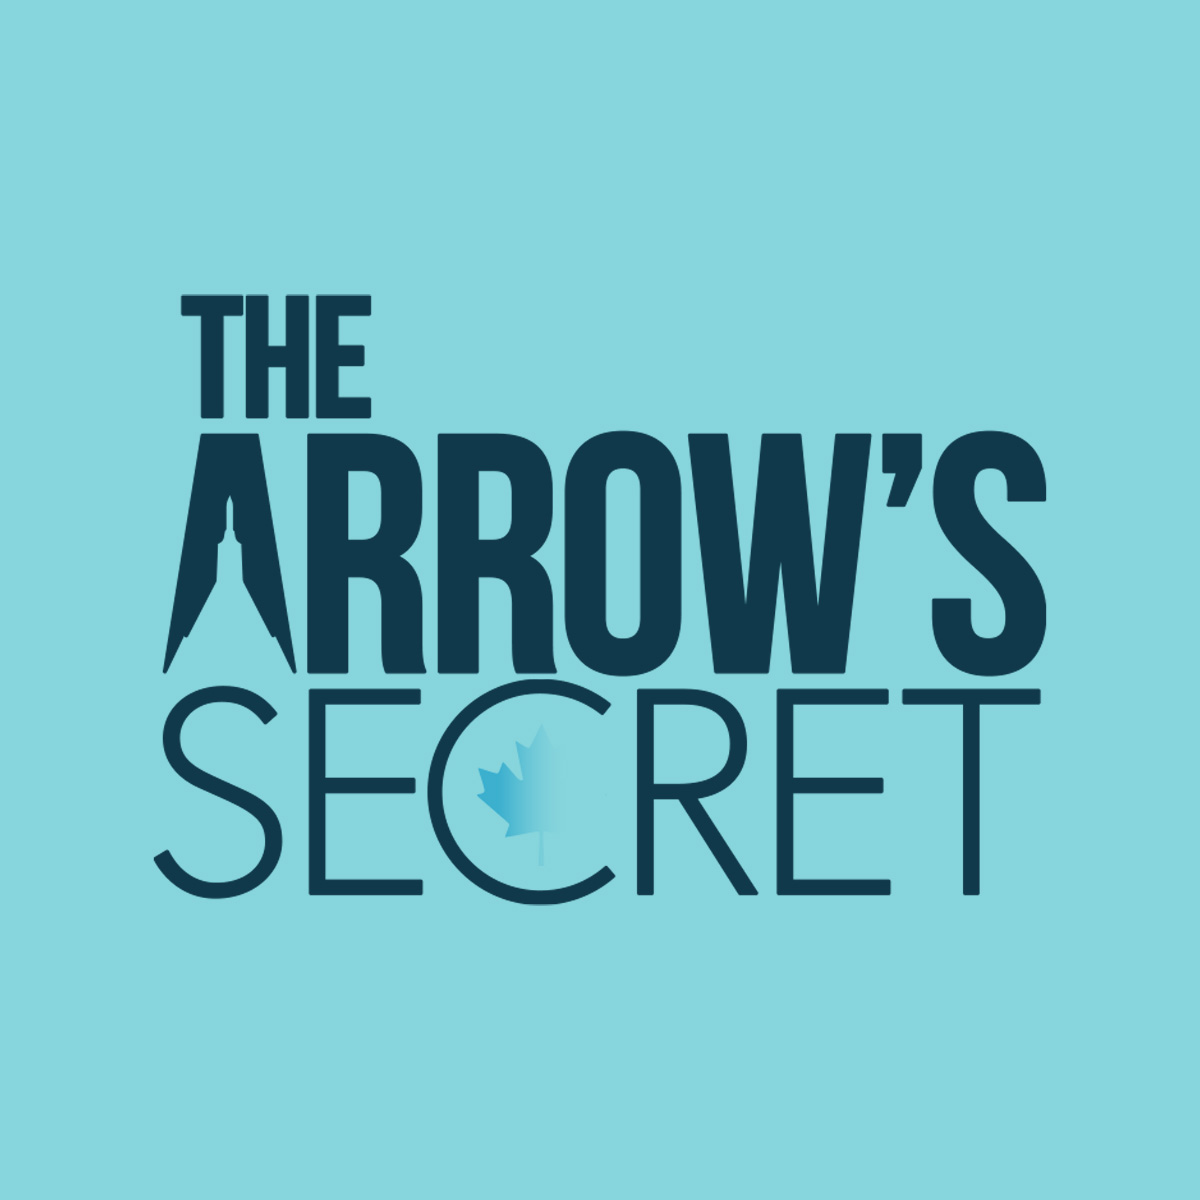 Image Description: Game logo for The Arrow's Secret - stylized lettering featuring the silhouette of the Avro Arrow knocked out of a capital letter A, and Canadian maple leaf